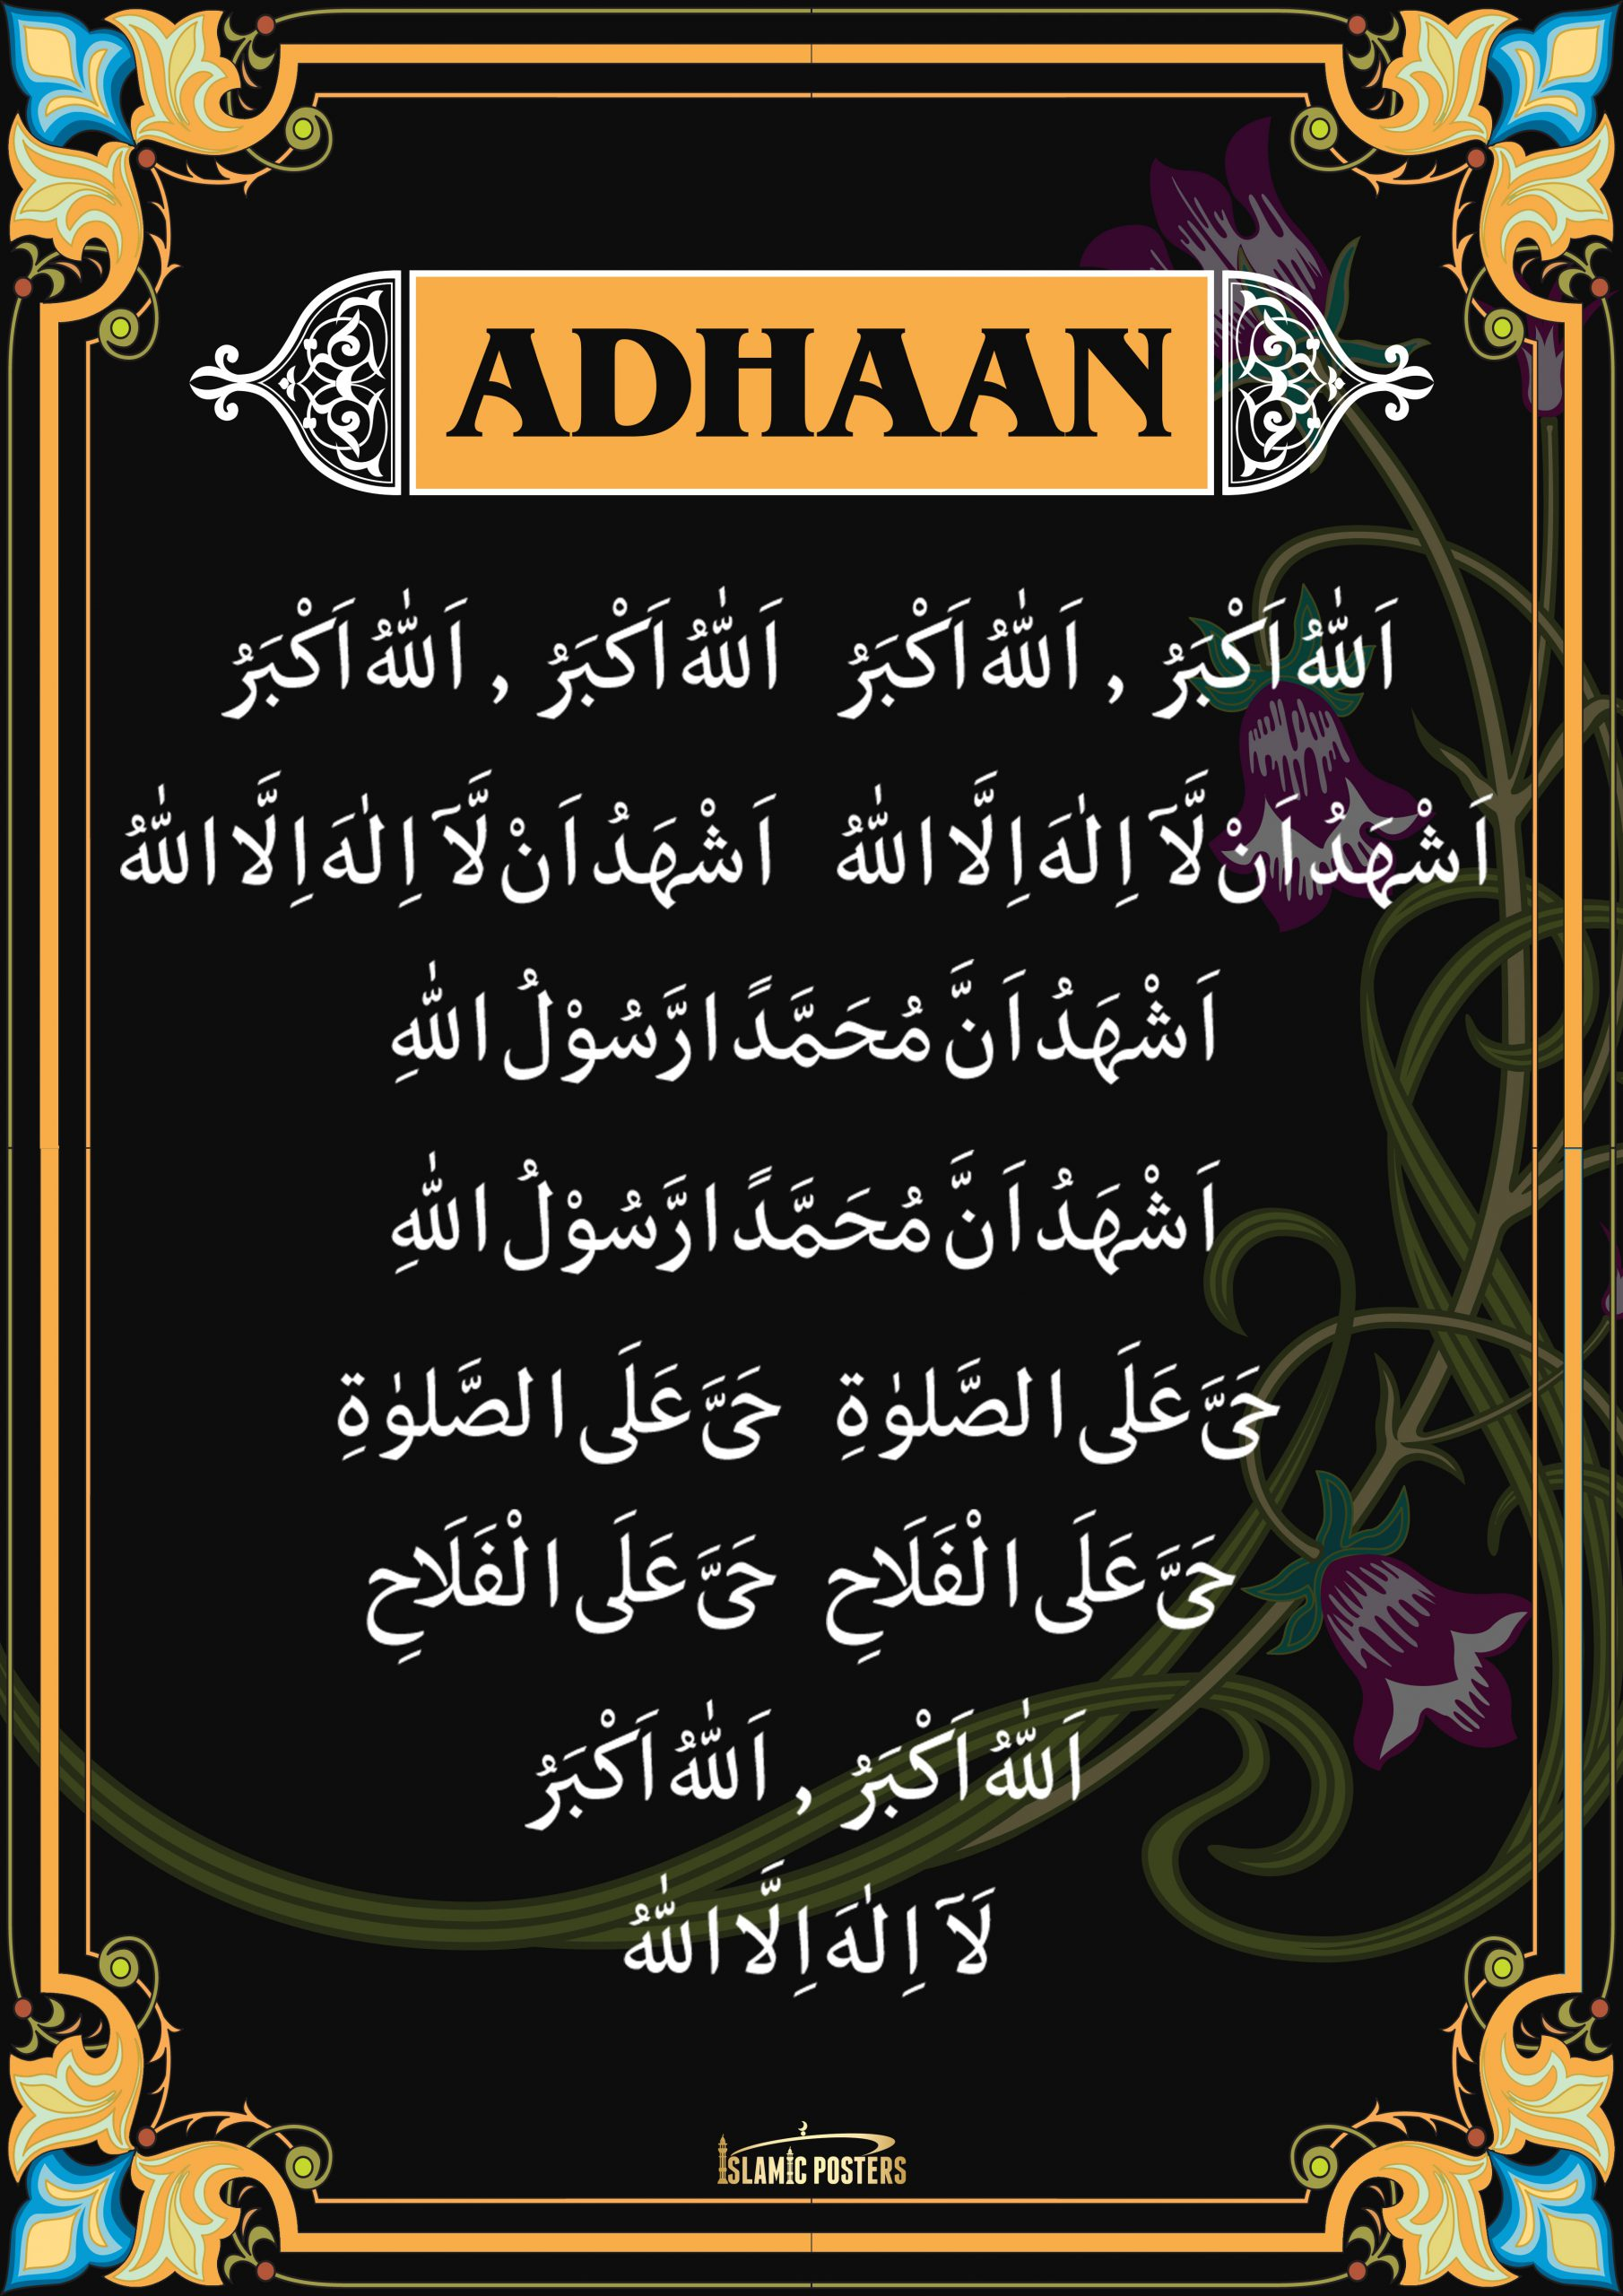 New-2-Adhaan-by-islamic-Posters.jpg